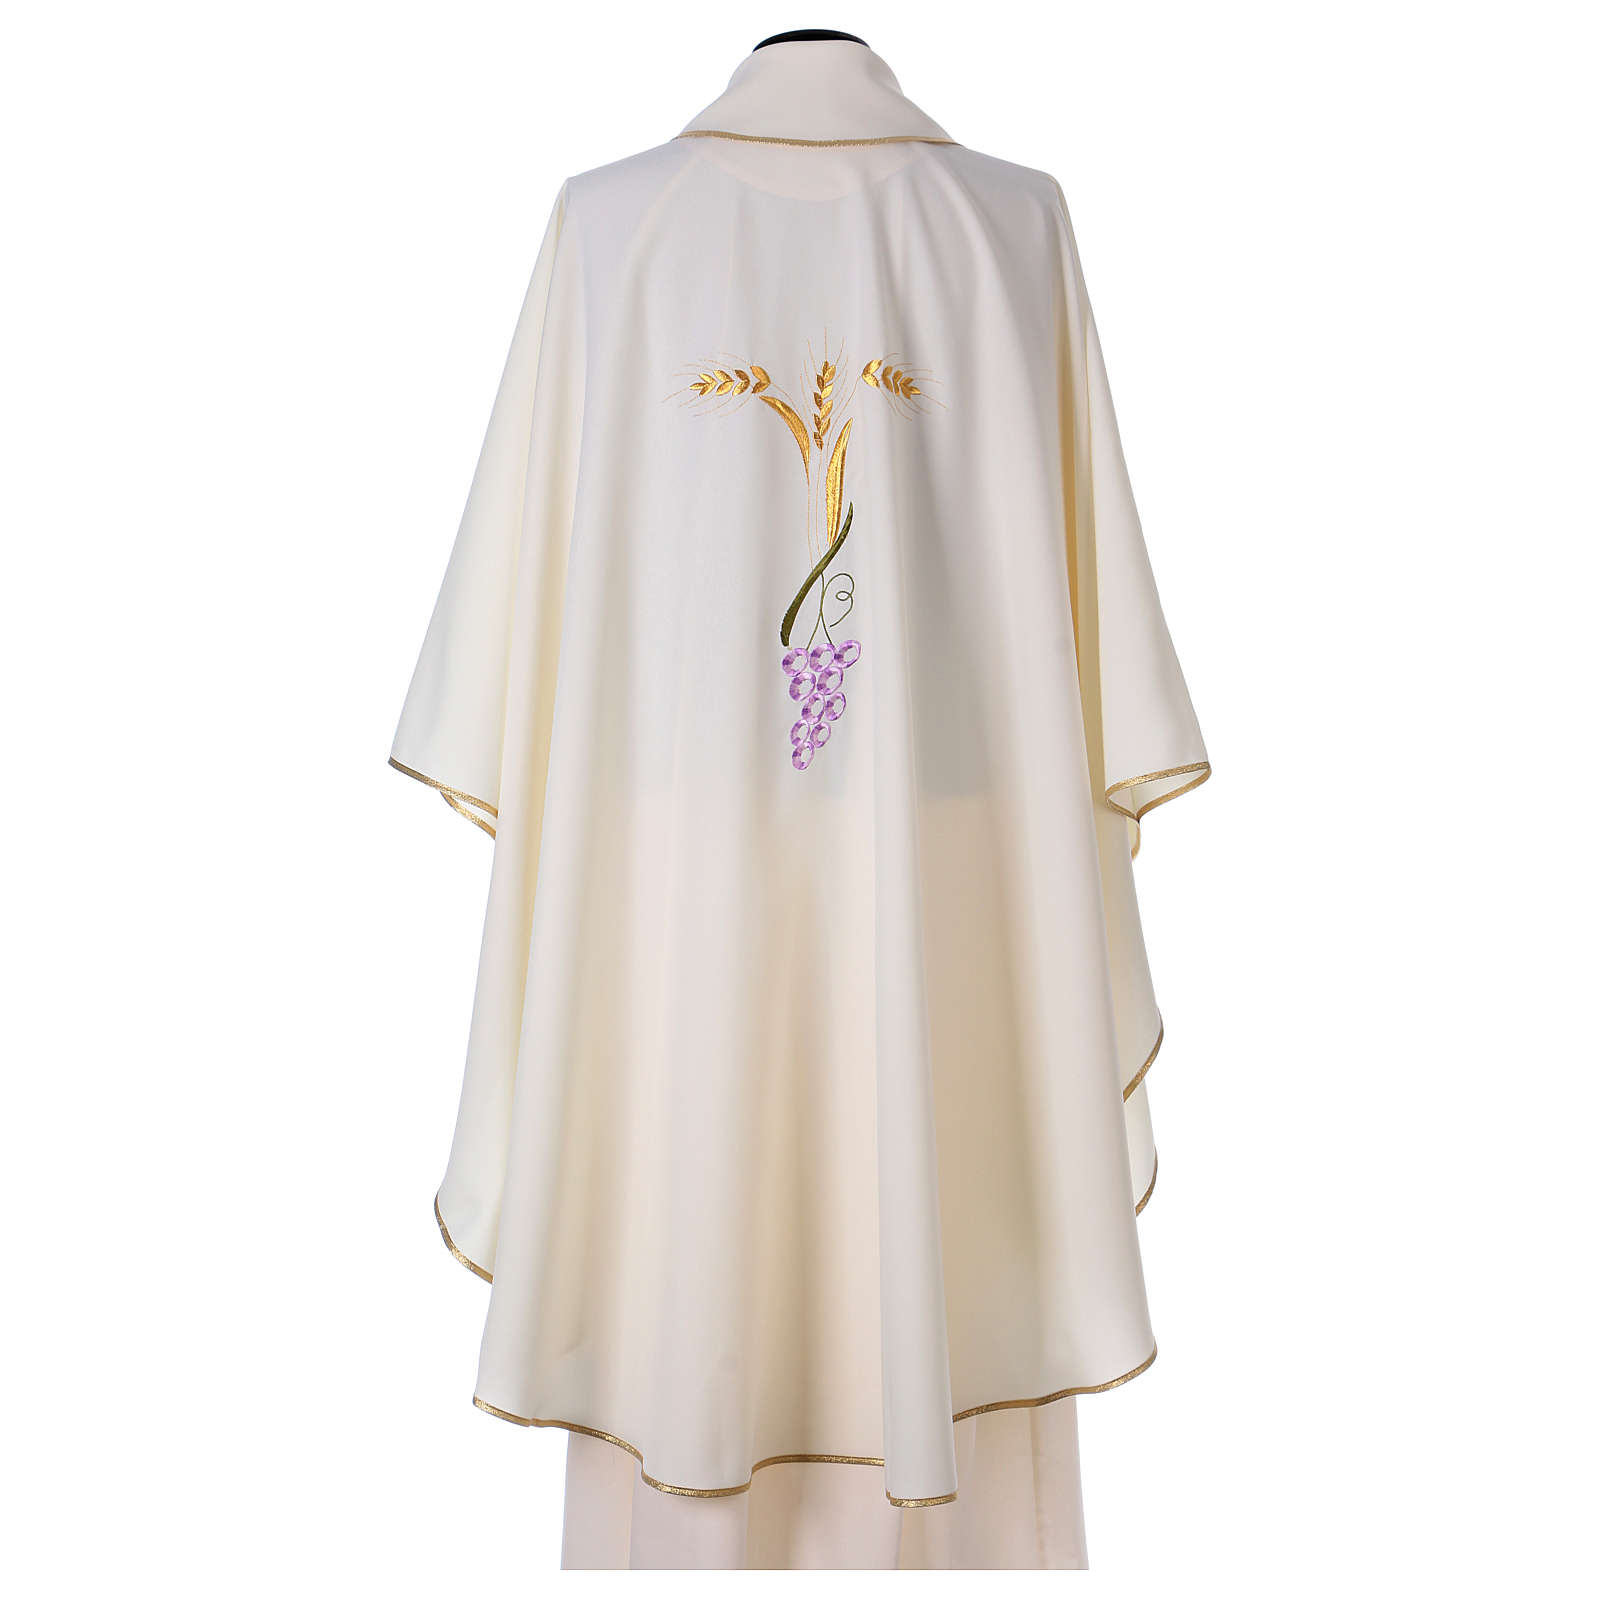 Priest Chasuble with three golden ears of wheat and grapes 4